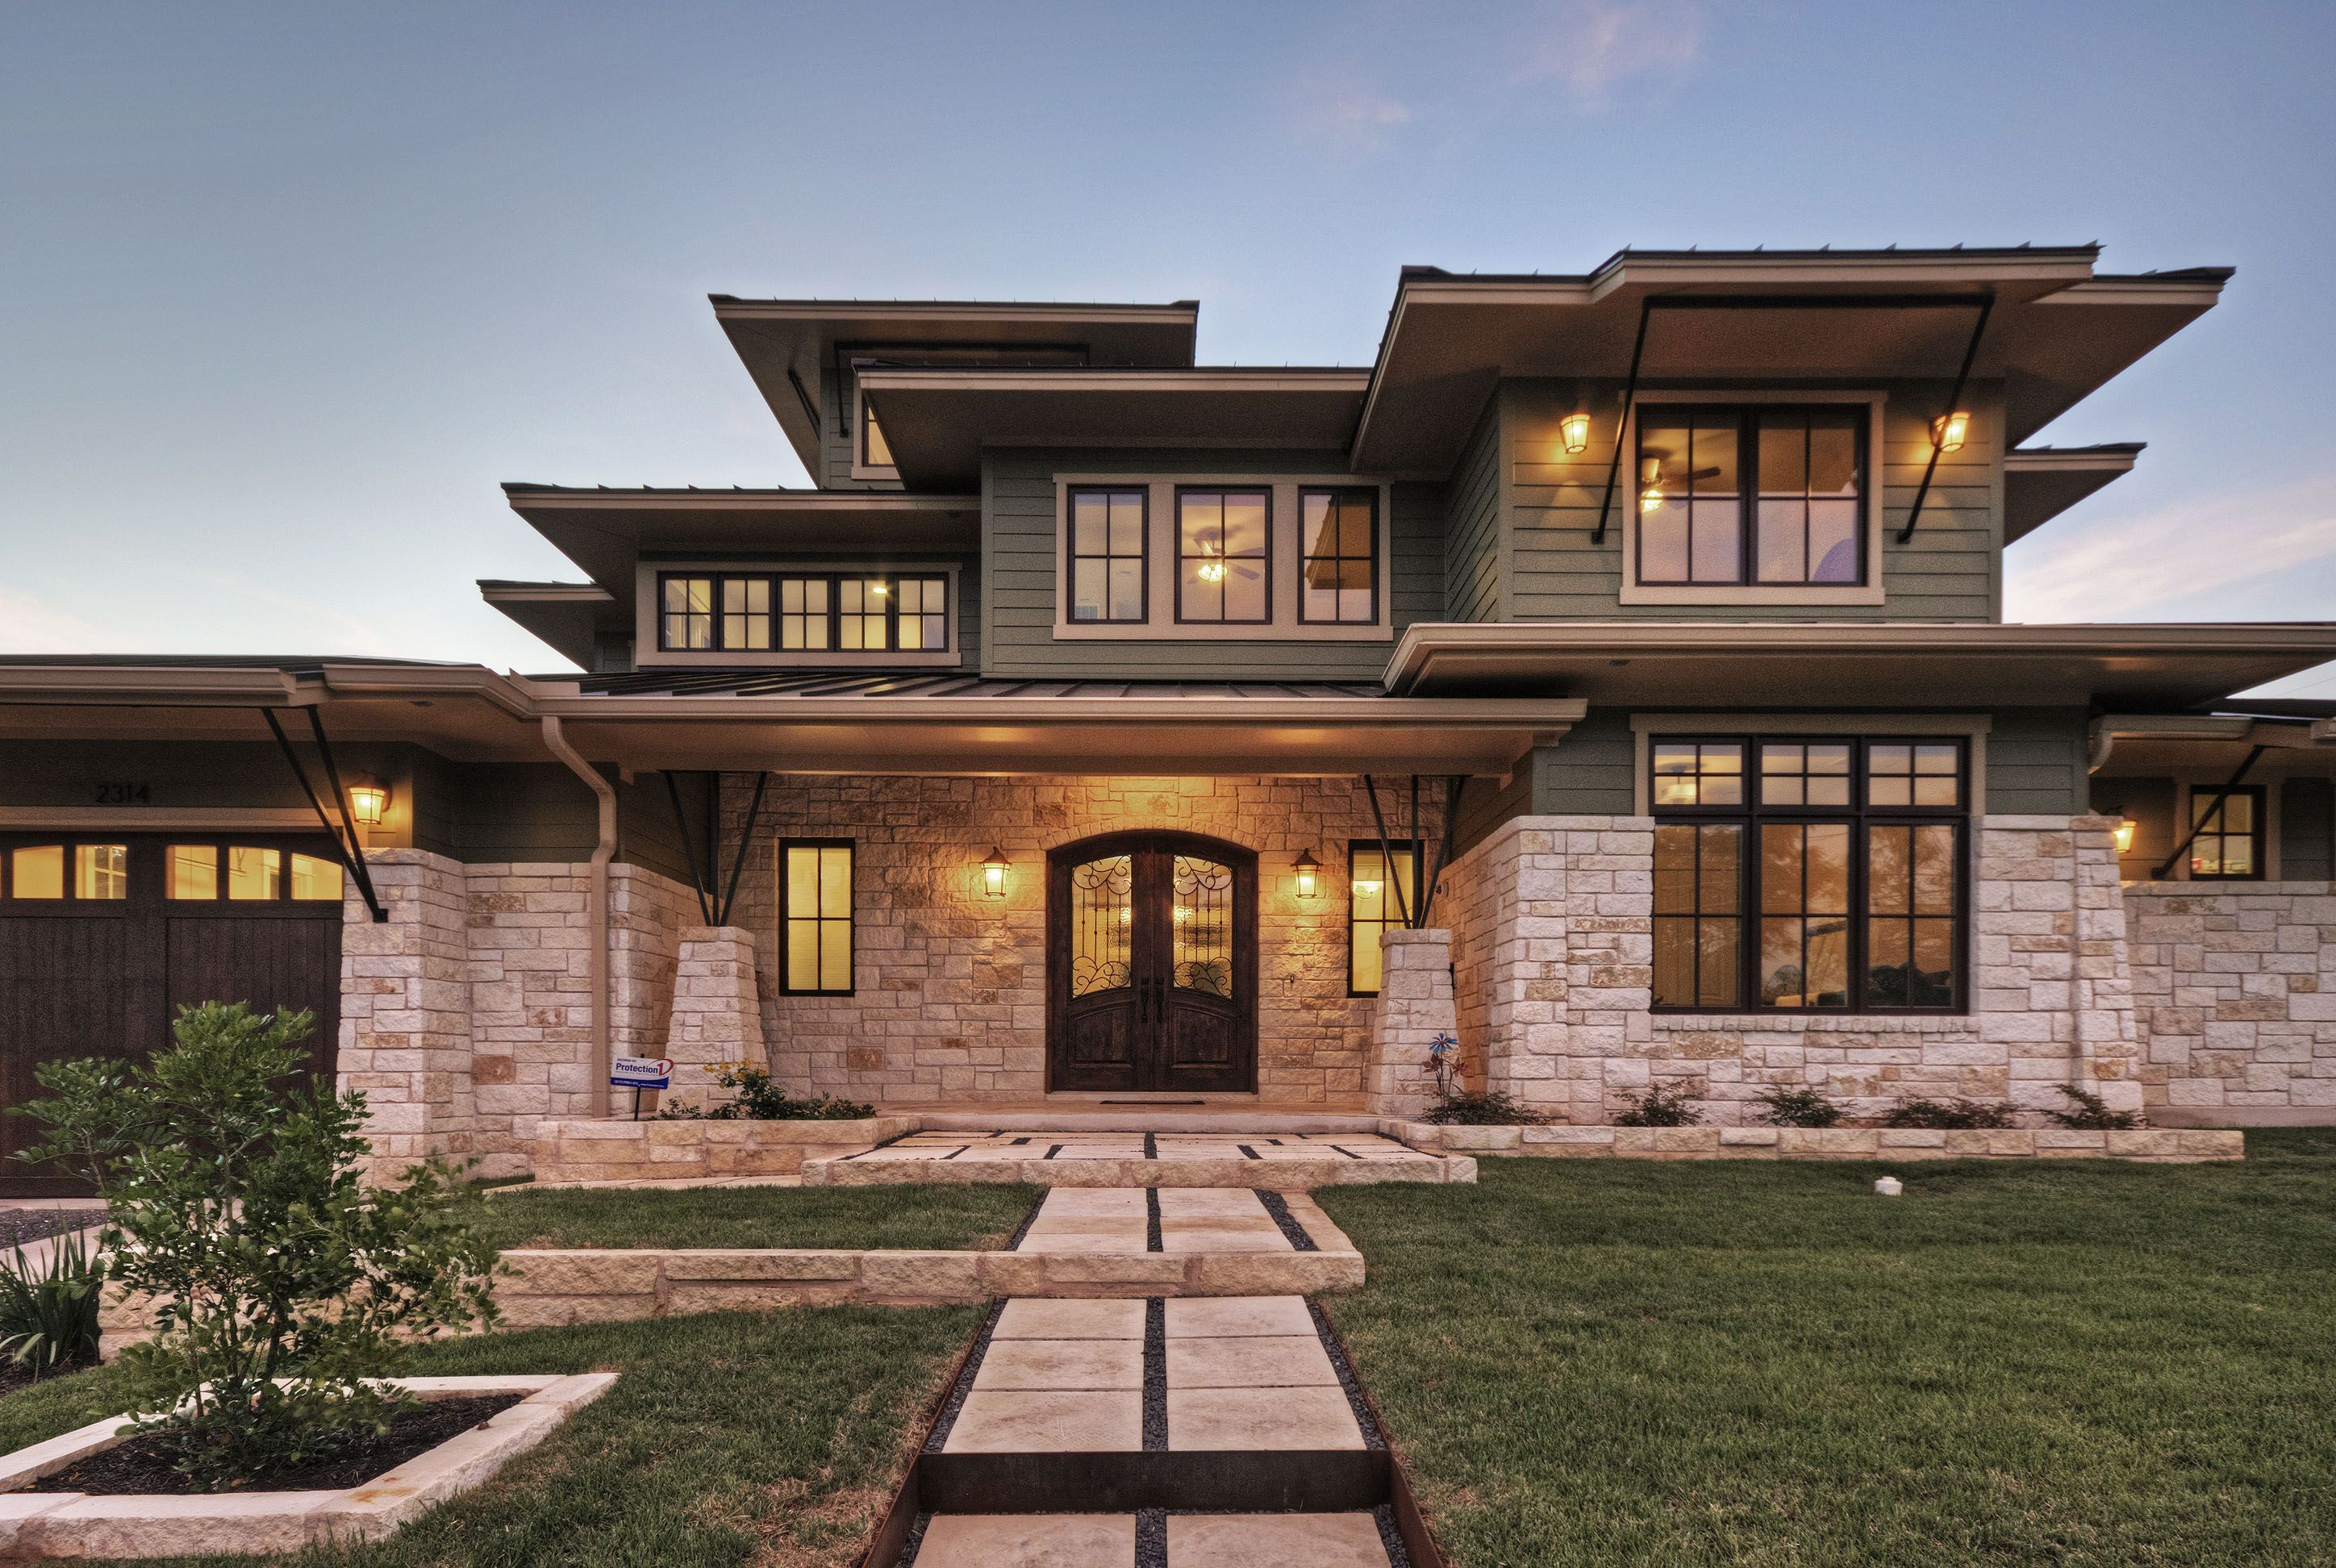 The Home Has A Native Limestone Exterior